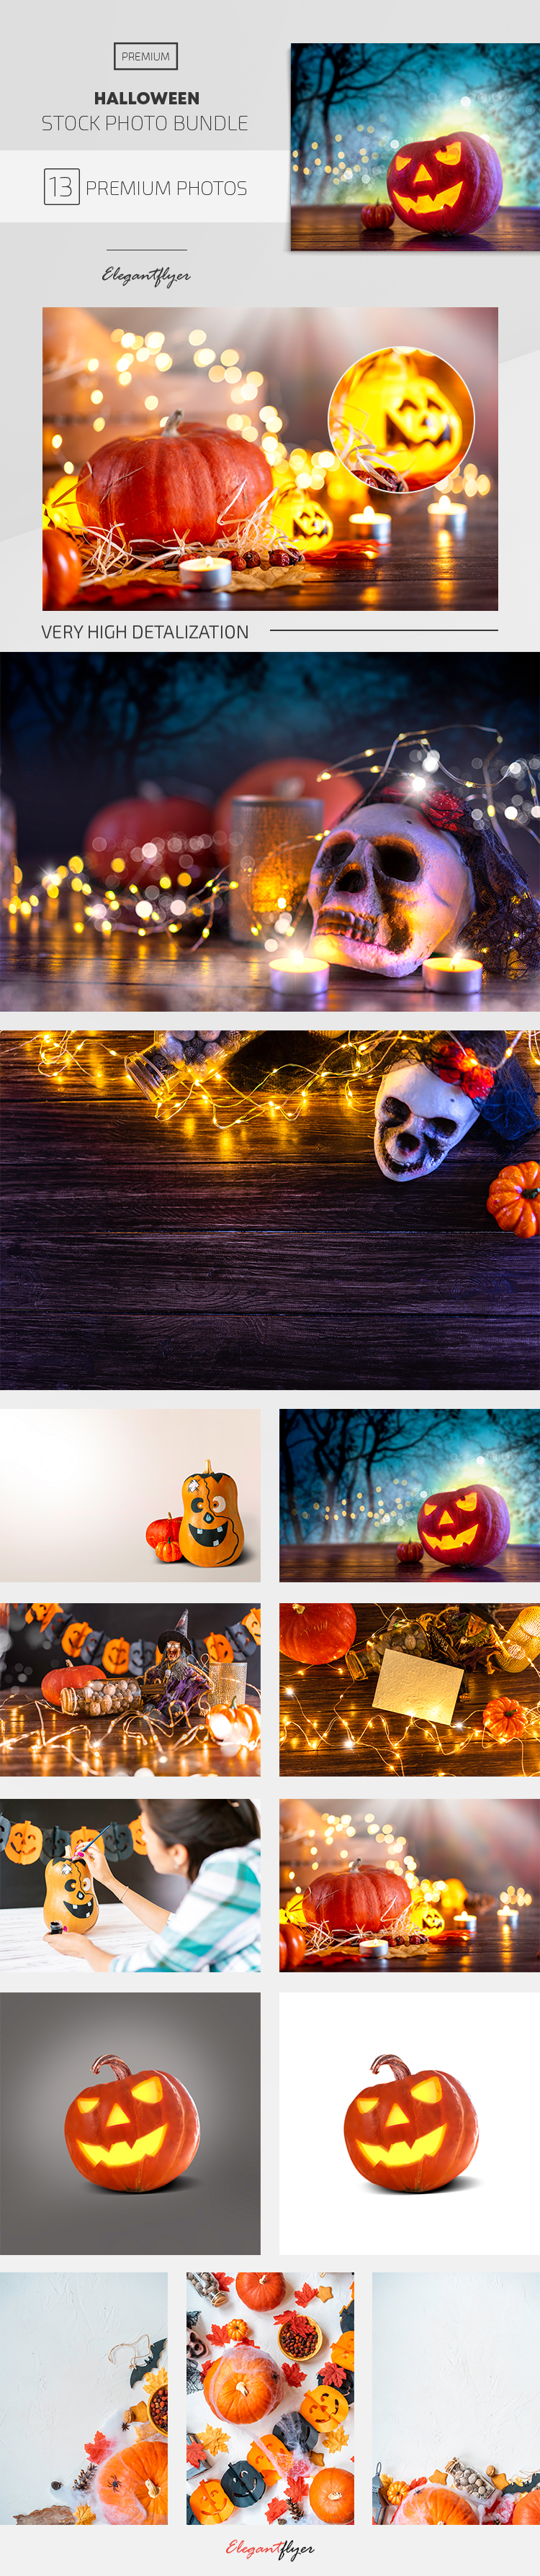 Halloween – 13 Premium Stock Photos Bundle